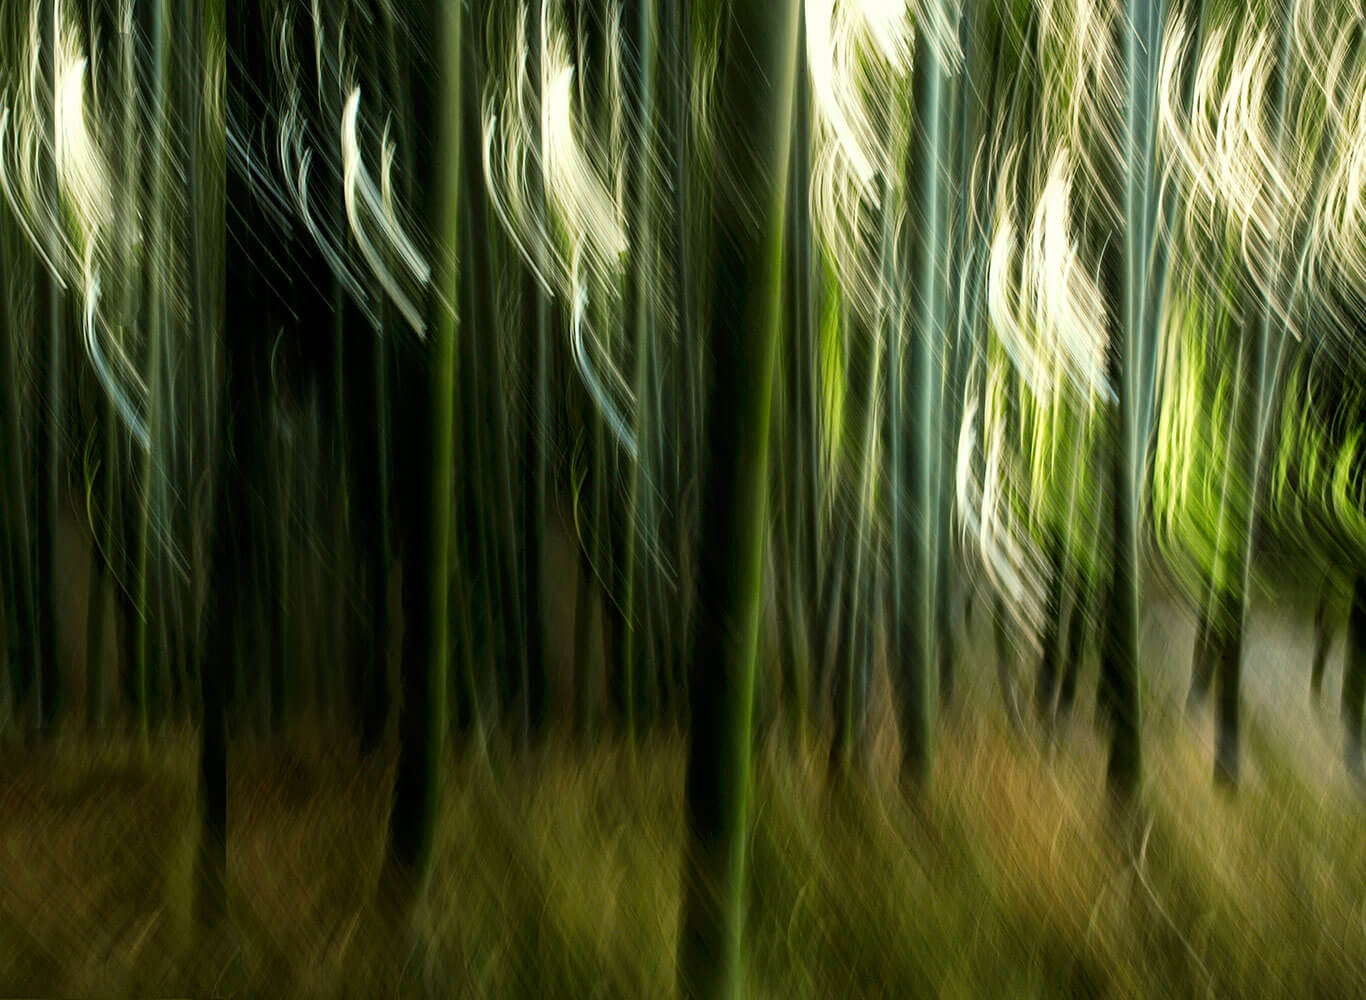 24_Breeze-in-bamboo-grove_07